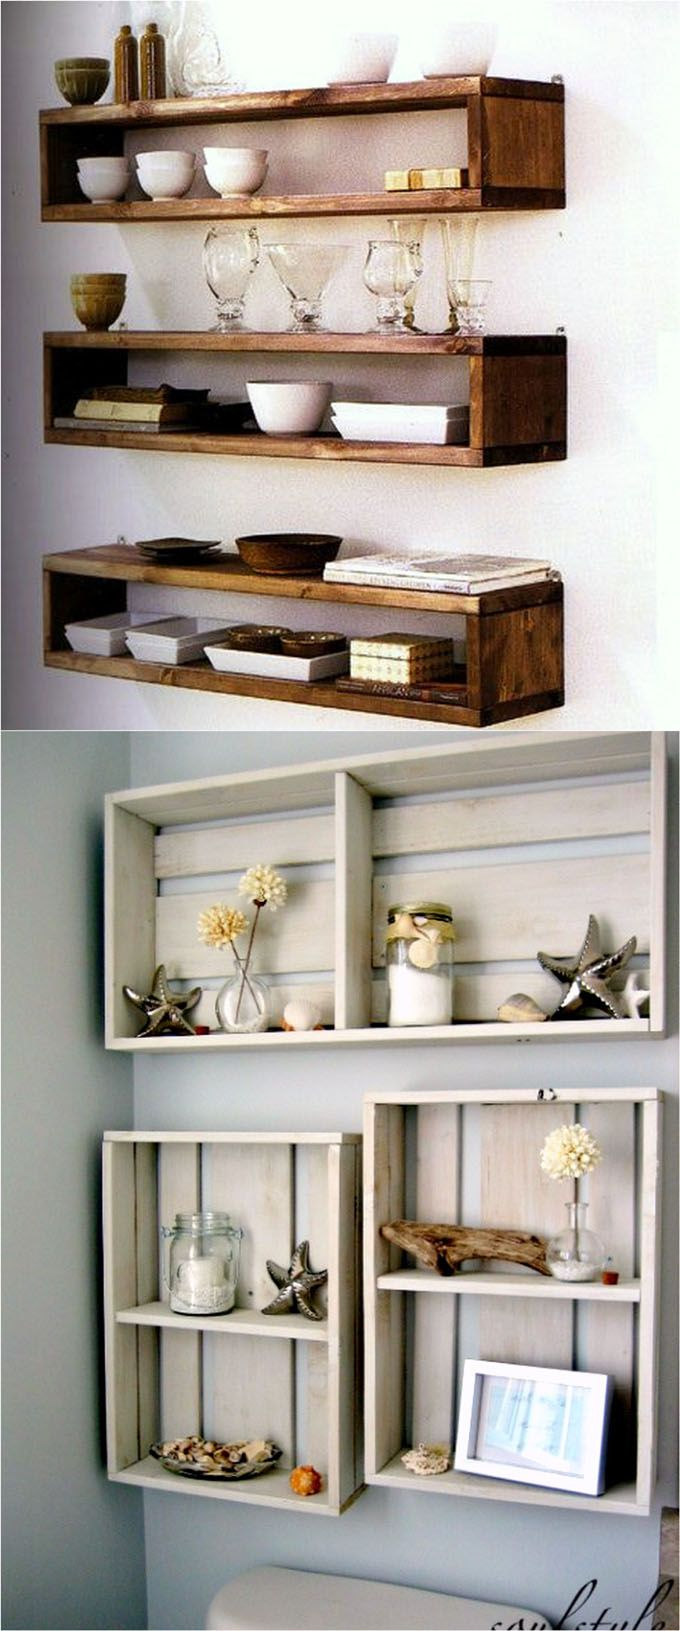 16 easy and stylish diy floating shelves wall shelves projects